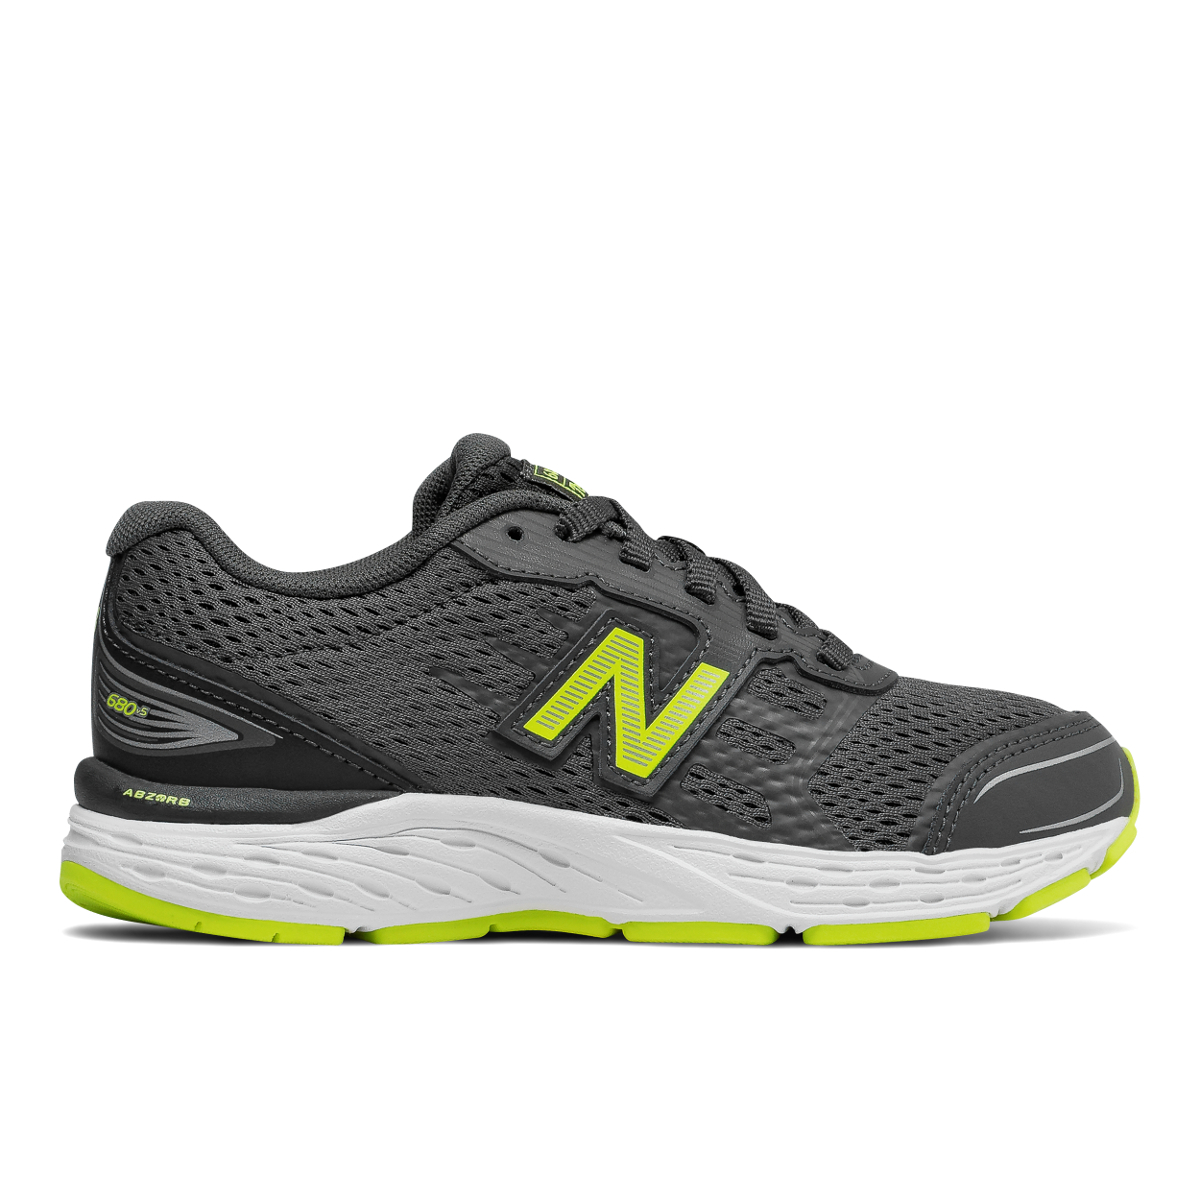 New Balance Boy's 680V5 Wide Running Shoes - Black, 5.5